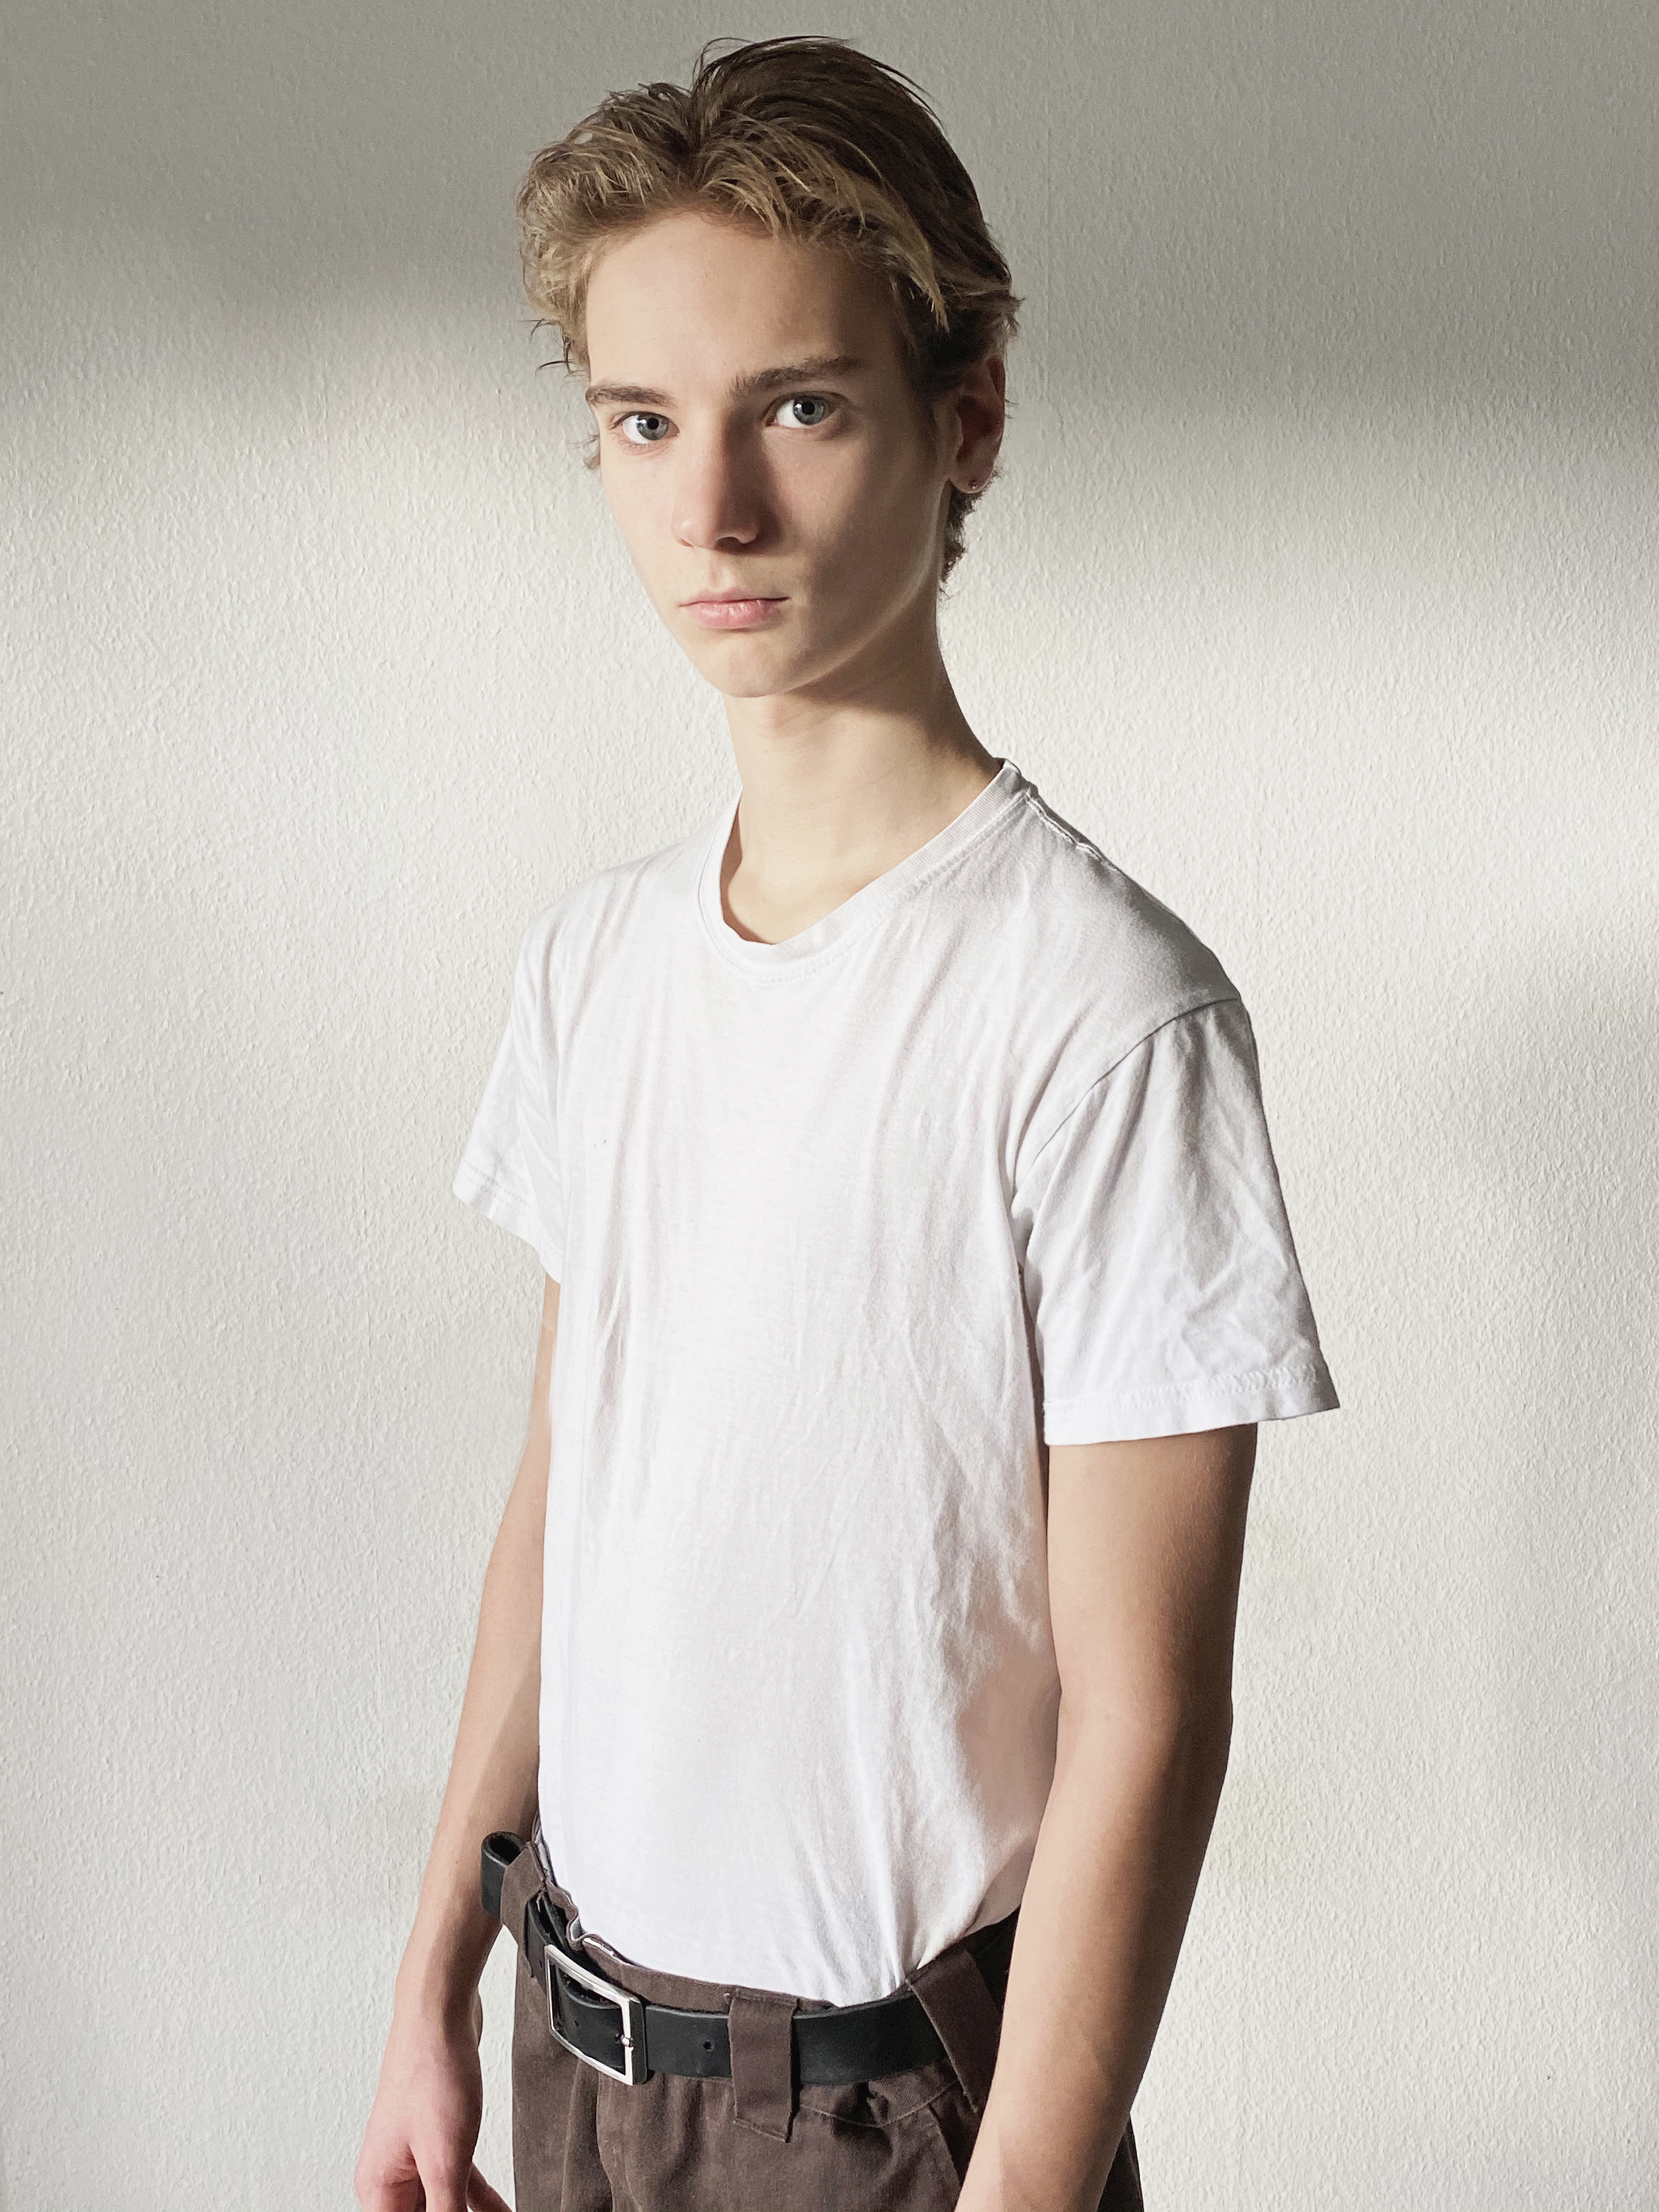 New face male model Albert Werner